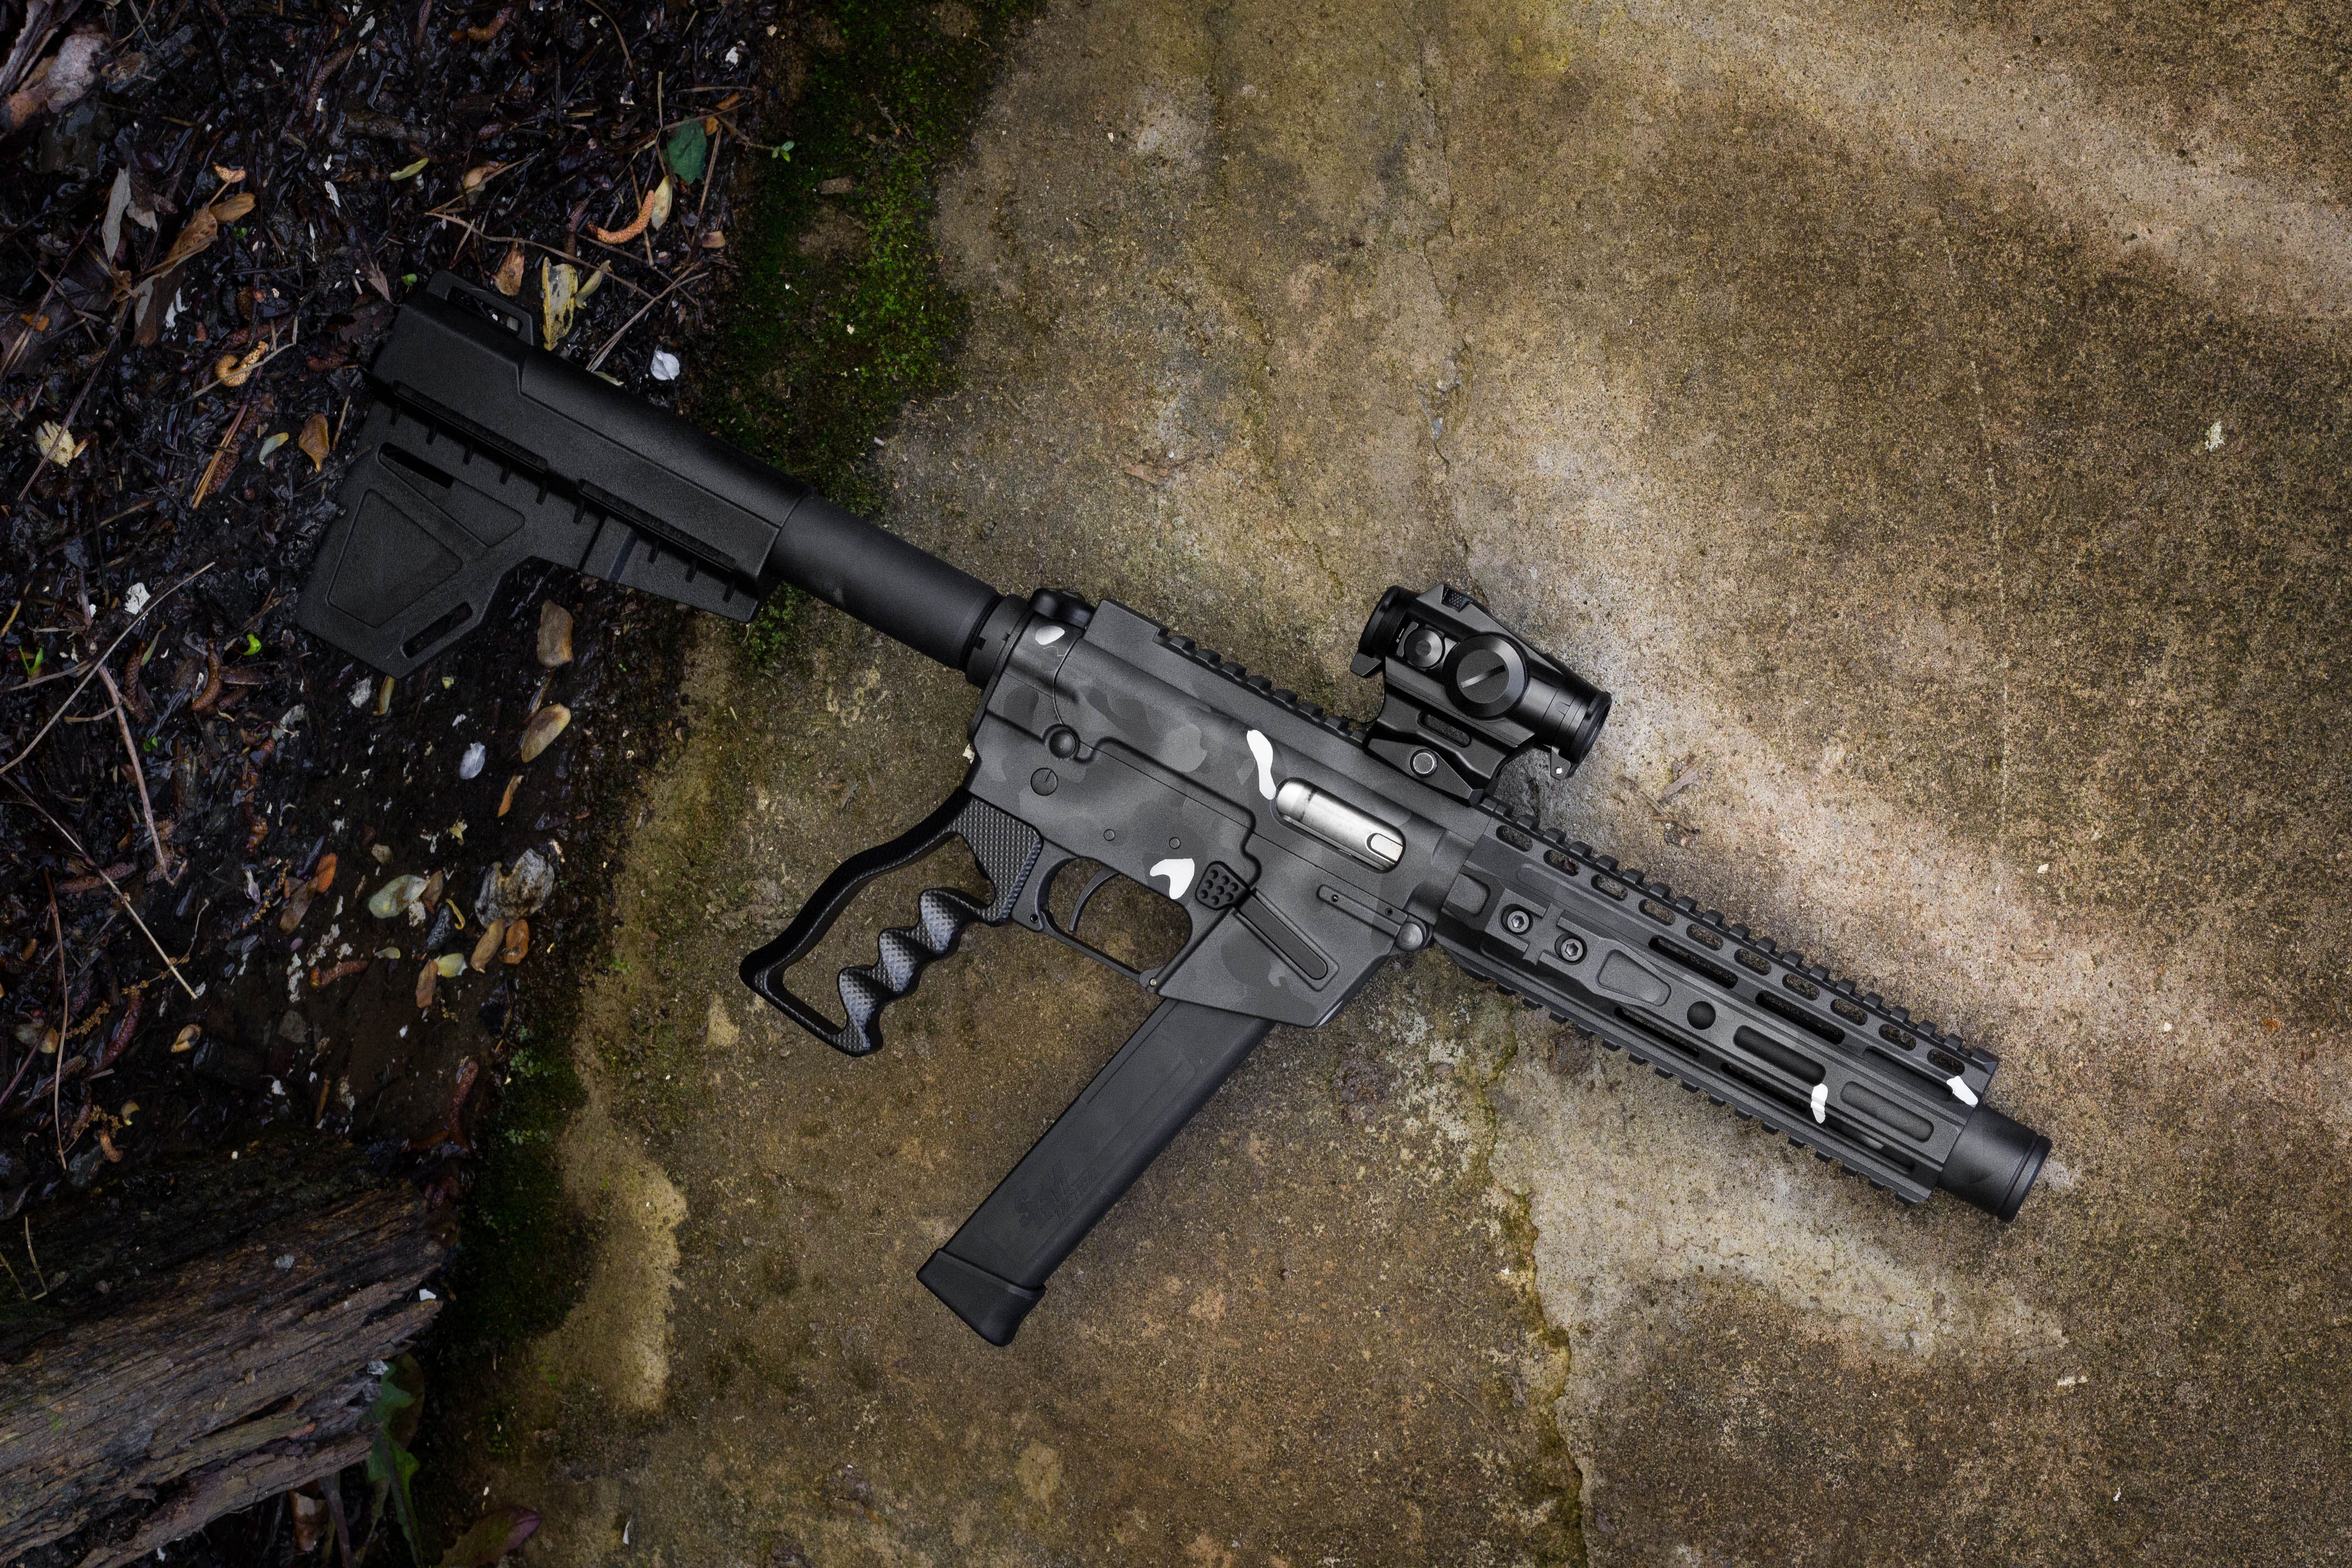 AR-9 with custom Cerakote job